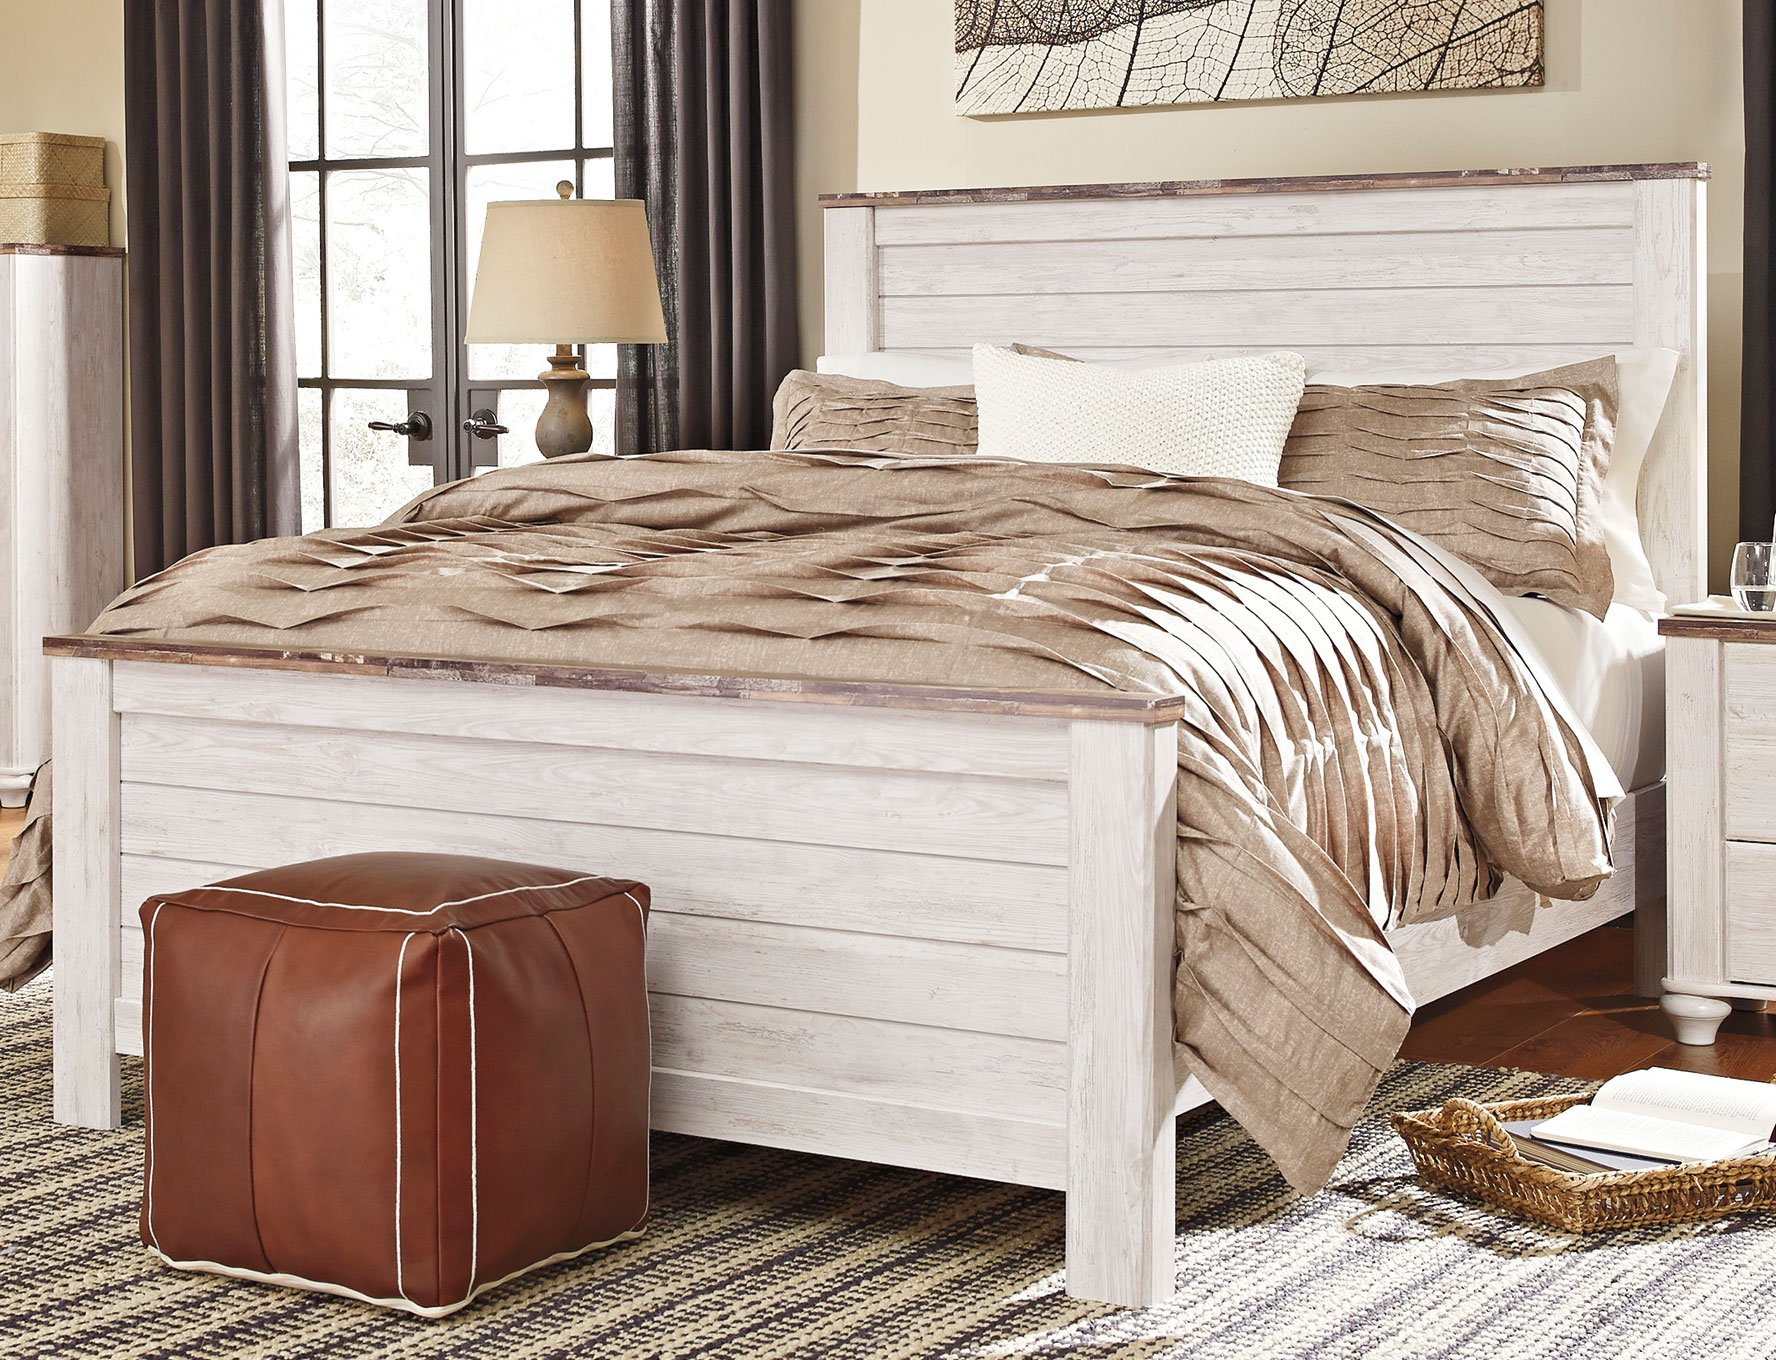 Classic Rustic Whitewashed Queen Bed Millhaven Rc Willey